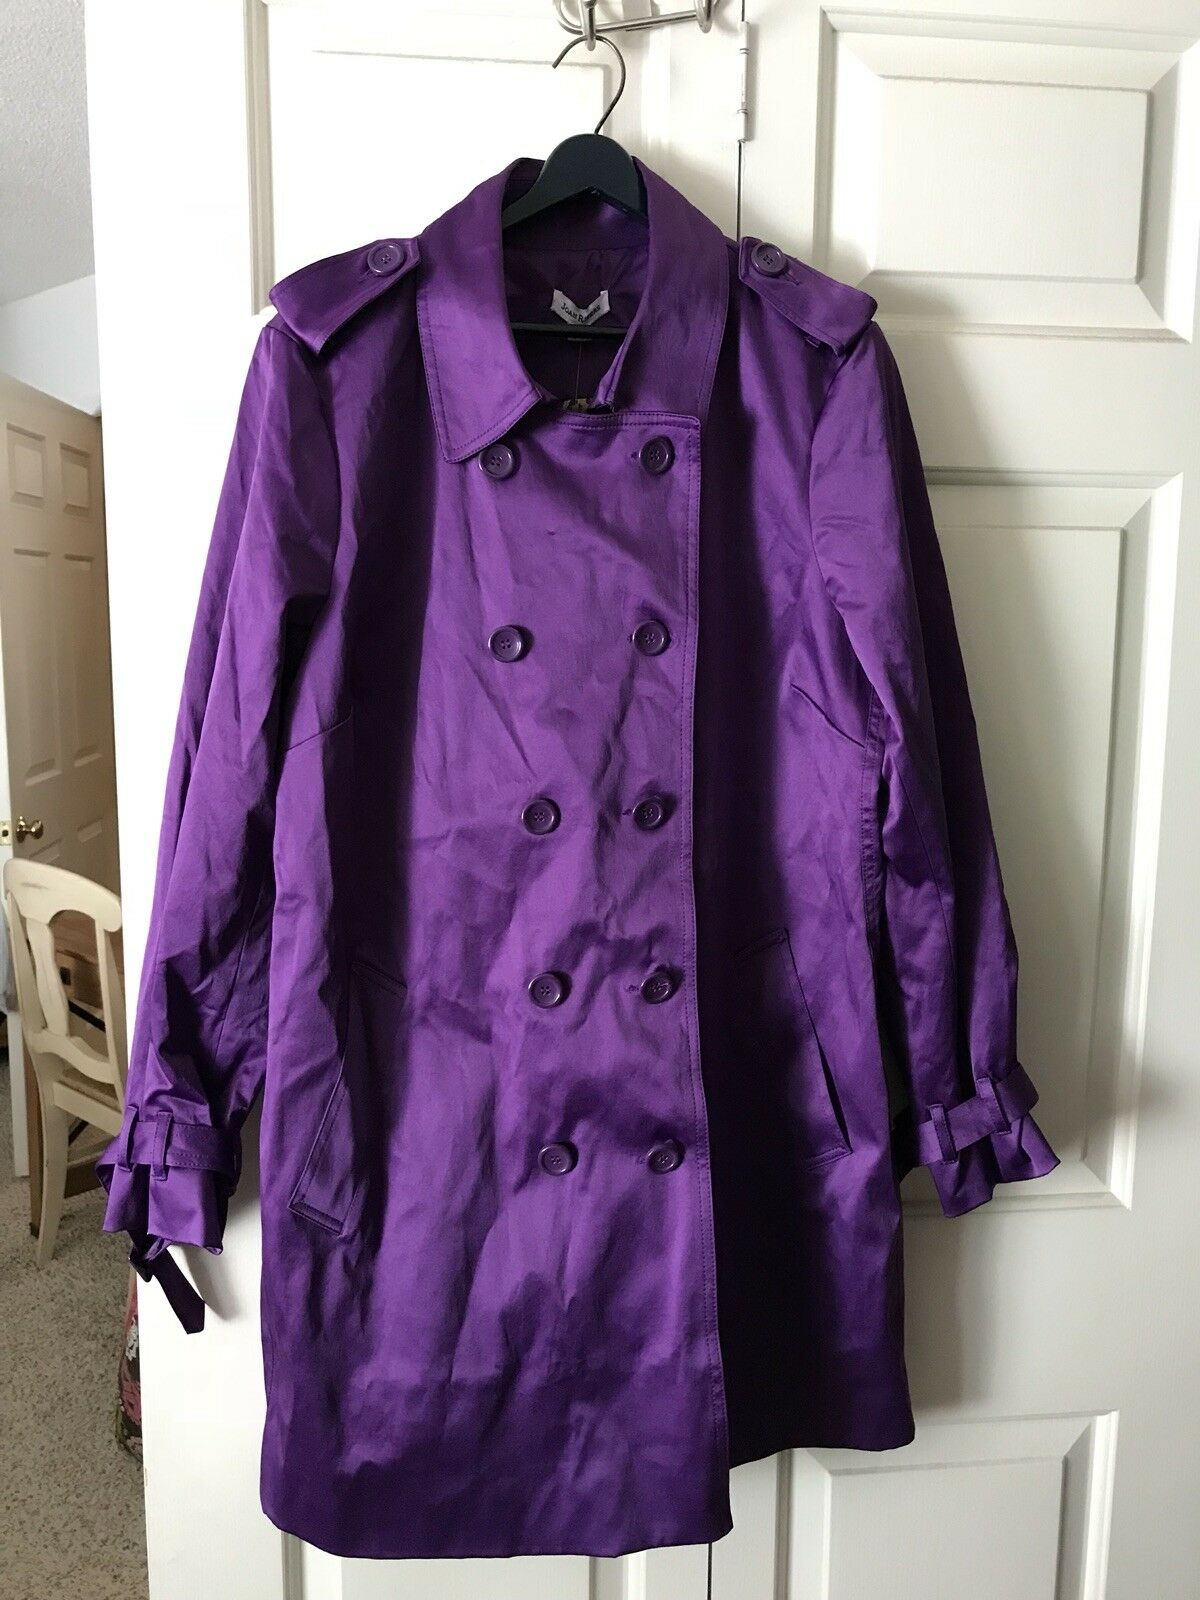 Joan Rivers The New Classic Trench Coat Purple Cheetah Lining Size XL QVC New